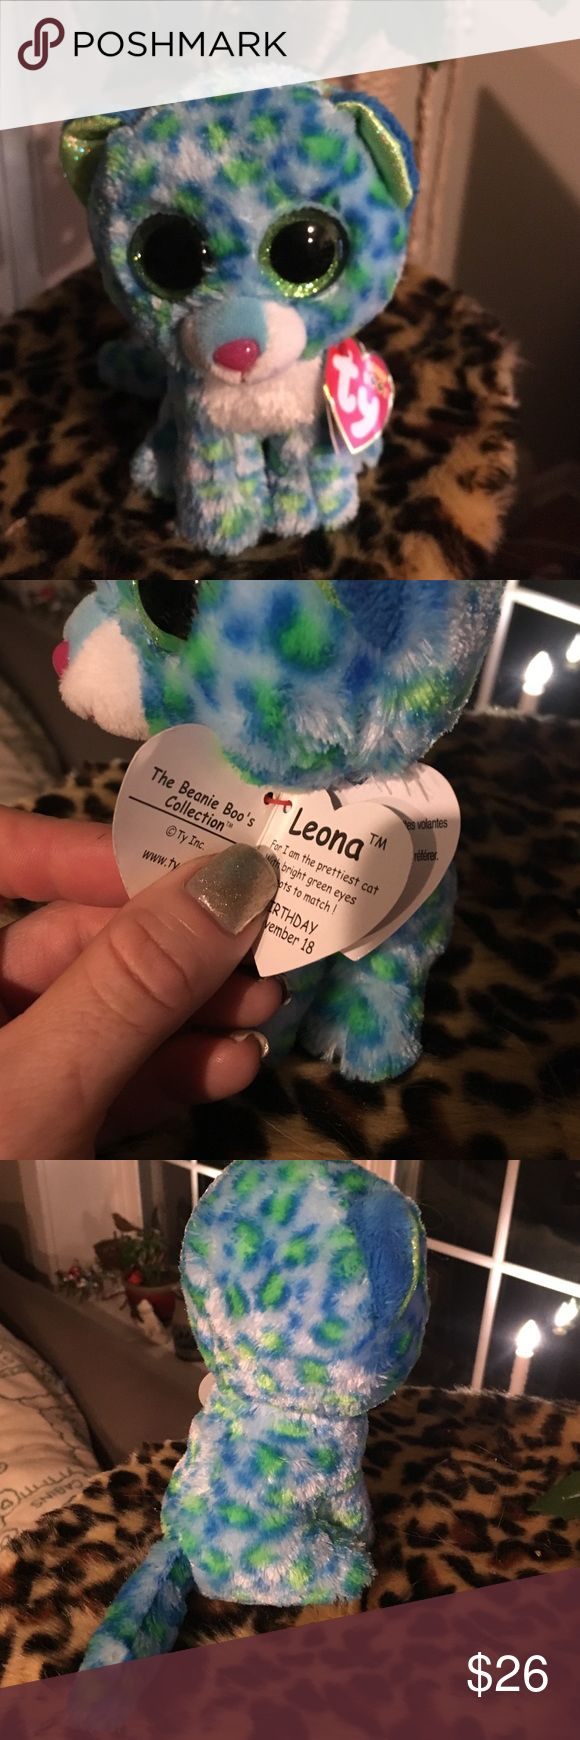 Leona ty beanie boos About 5/5.5 inches high this small beanie baby(Leona) is a collectors doll. Very cut and soft. Pet and smoke free home.  She is a beautiful bright blue with sparkly green eyes and glitter accents. Adorable. Brand new. From ty company. ty Other